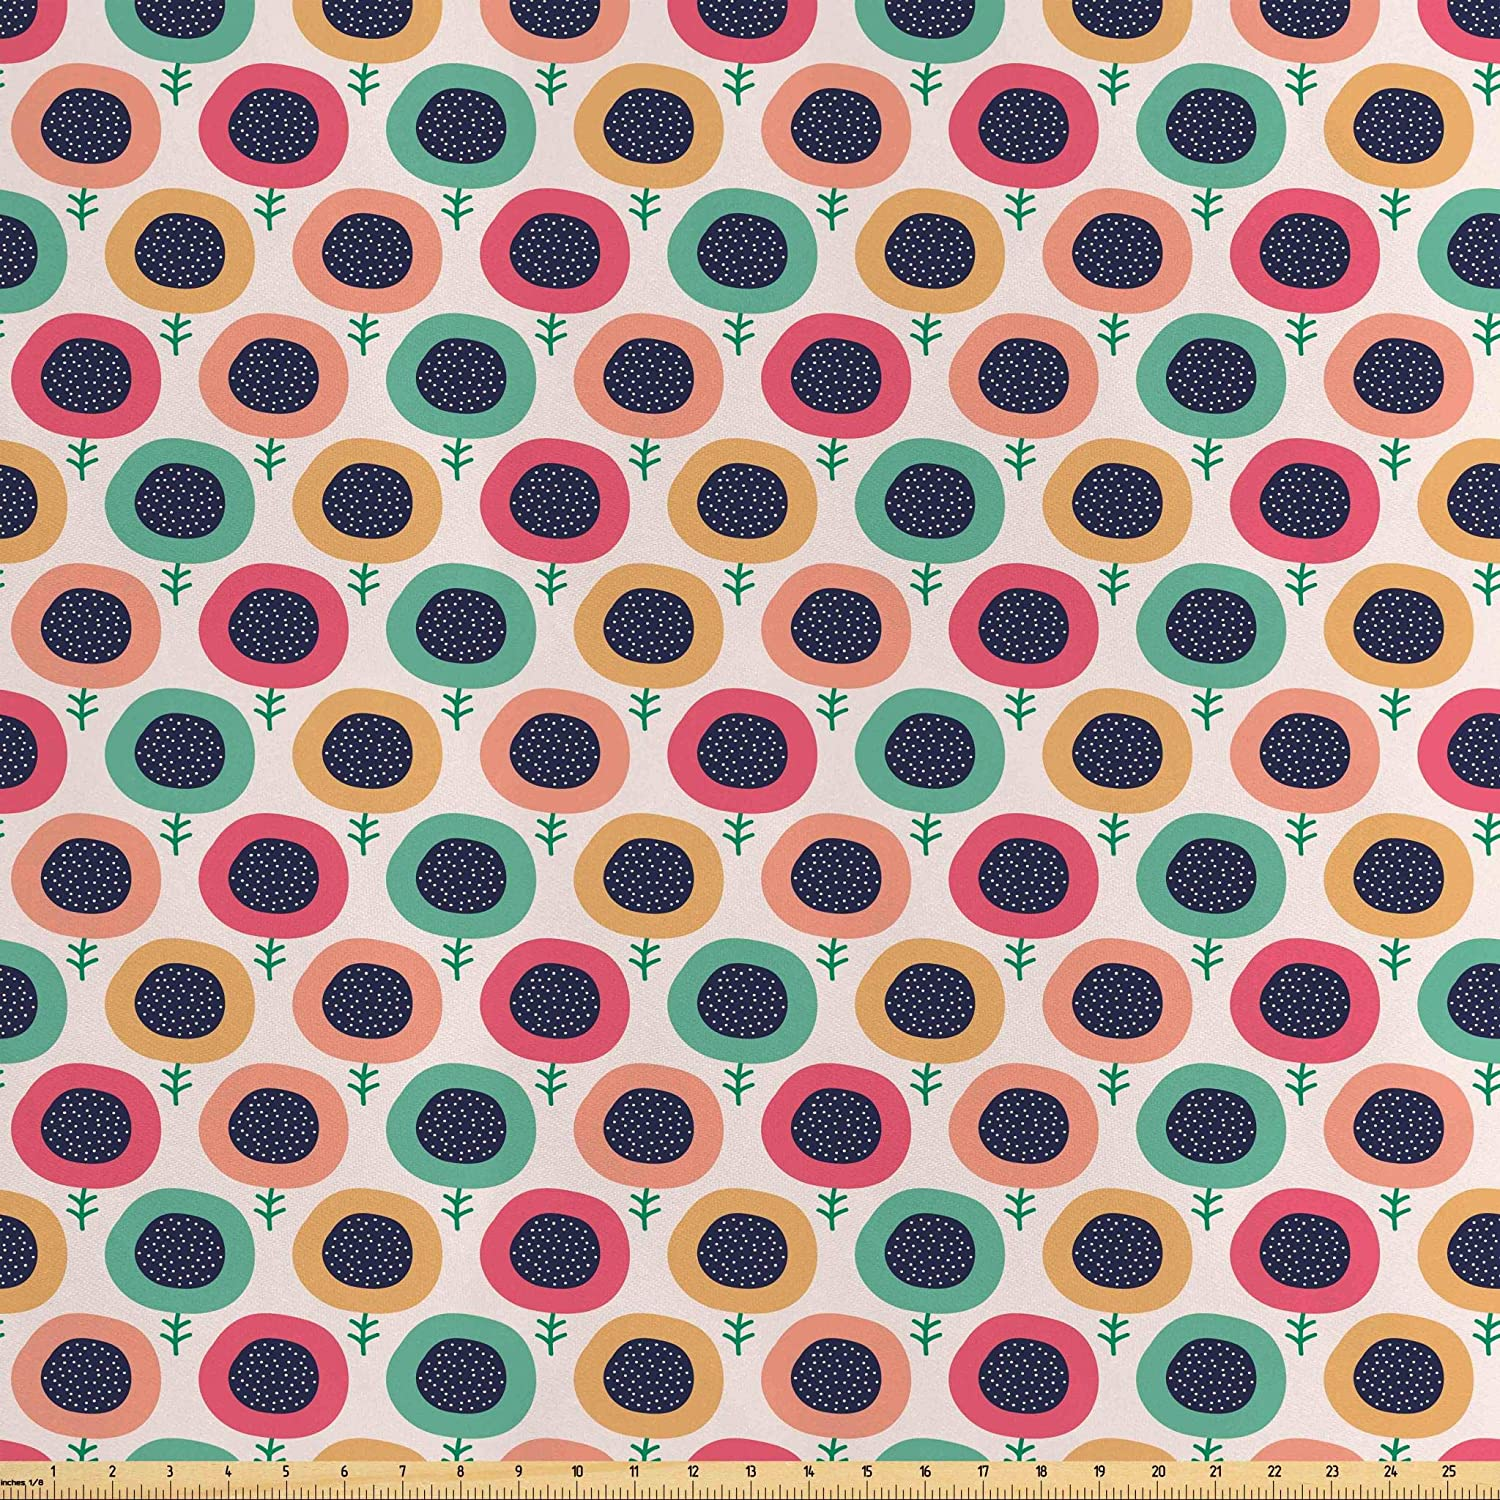 Lunarable Retro Modern Fabric by The Yard, Pastel Colored Absurd Abstract Design of Flowers with Round Dotted Blossoms, Decorative Satin Fabric for Home Textiles and Crafts, 3 Yards, Multicolor